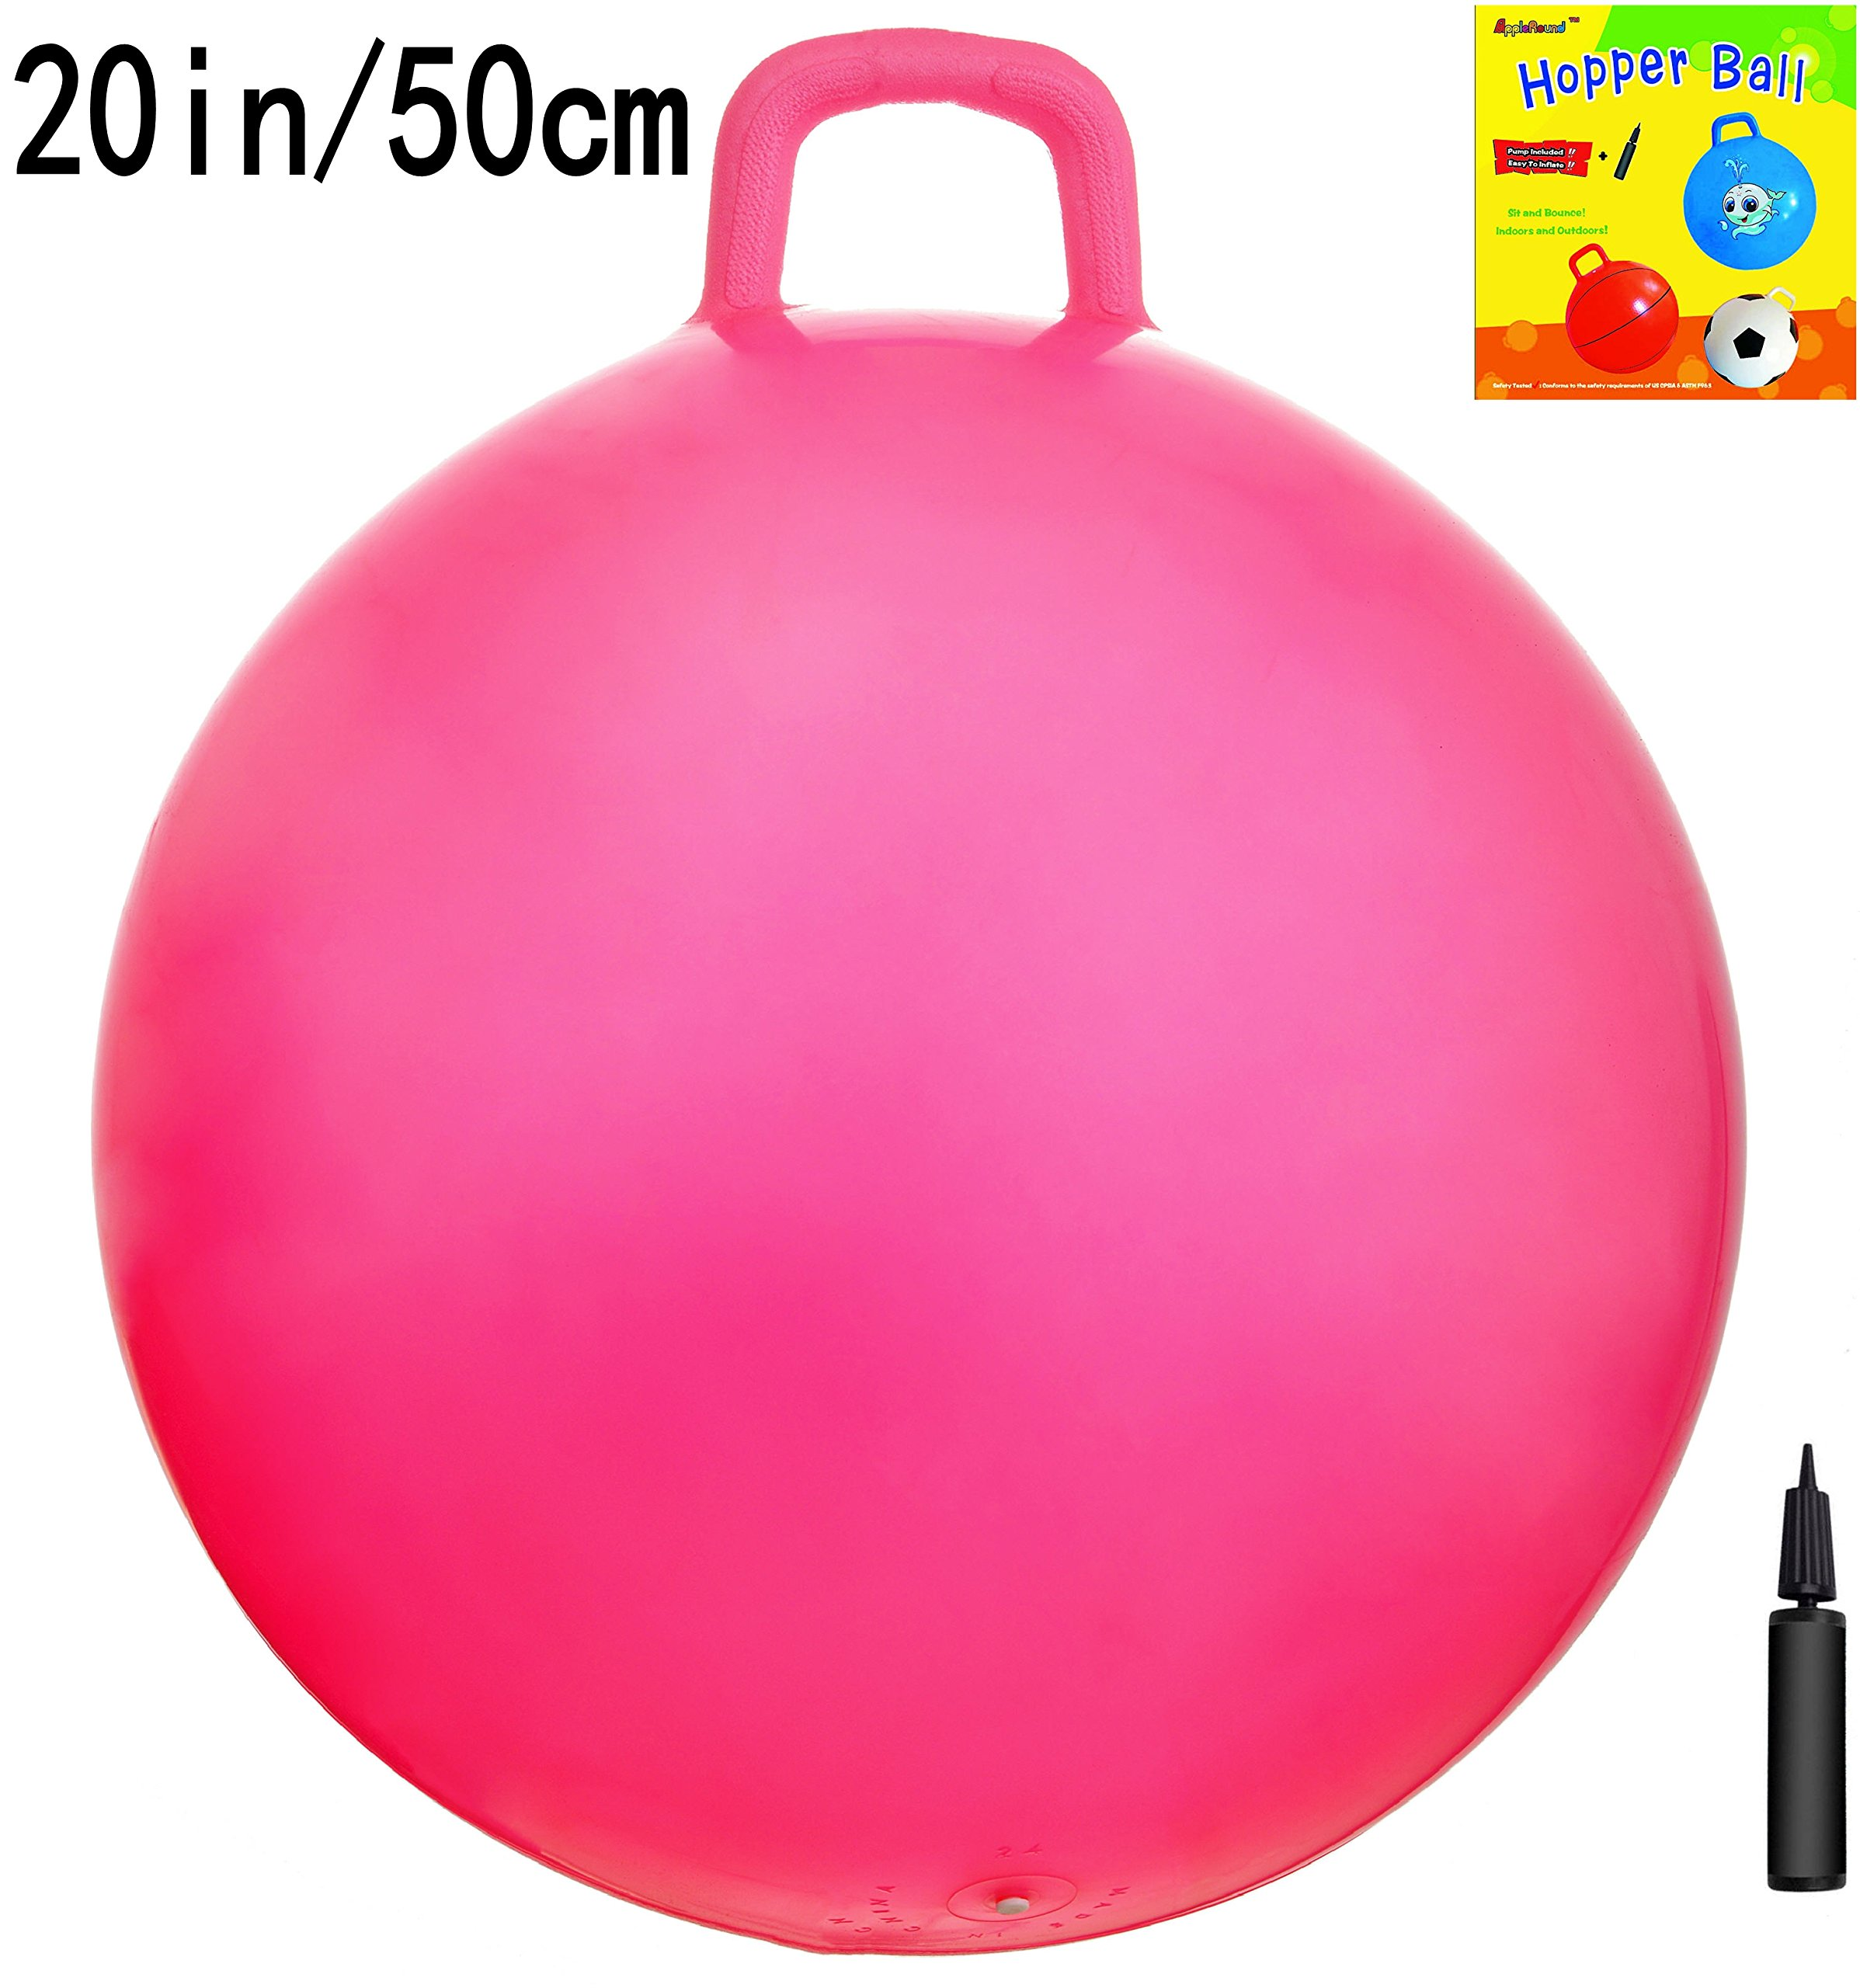 AppleRound Space Hopper Ball with Air Pump: 20in/50cm Diameter for Ages 7-9, Hop Ball, Kangaroo Bouncer, Hoppity Hop, Jumping Ball, Sit & Bounce